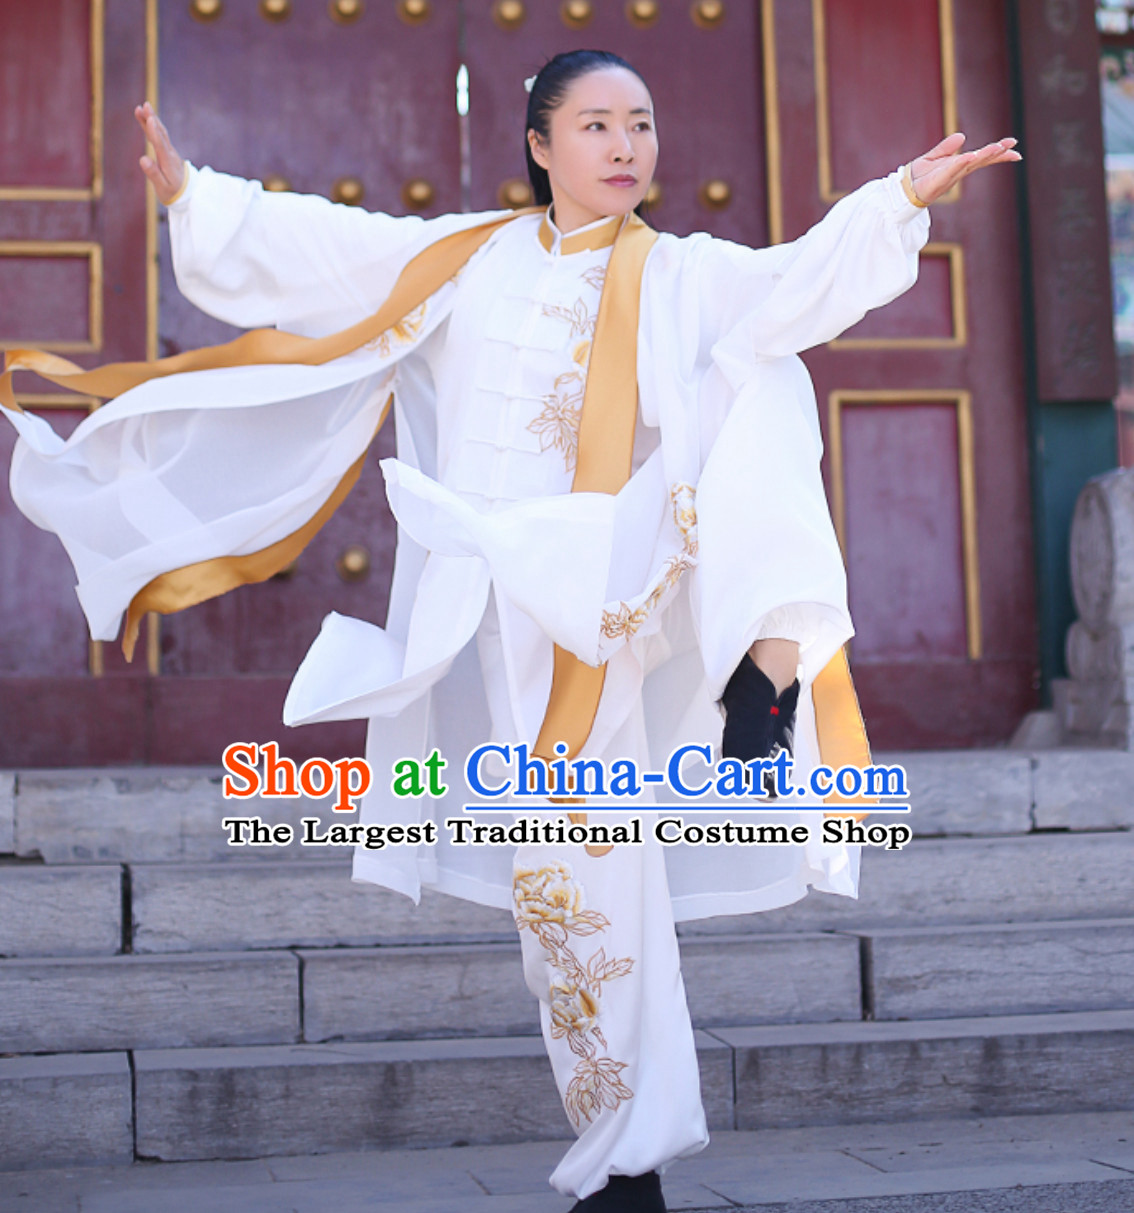 Top Chinese Traditional Competition Championship Tai Chi Taiji Kung Fu Wing Chun Shaolin Master Suits Dresses Complete Set